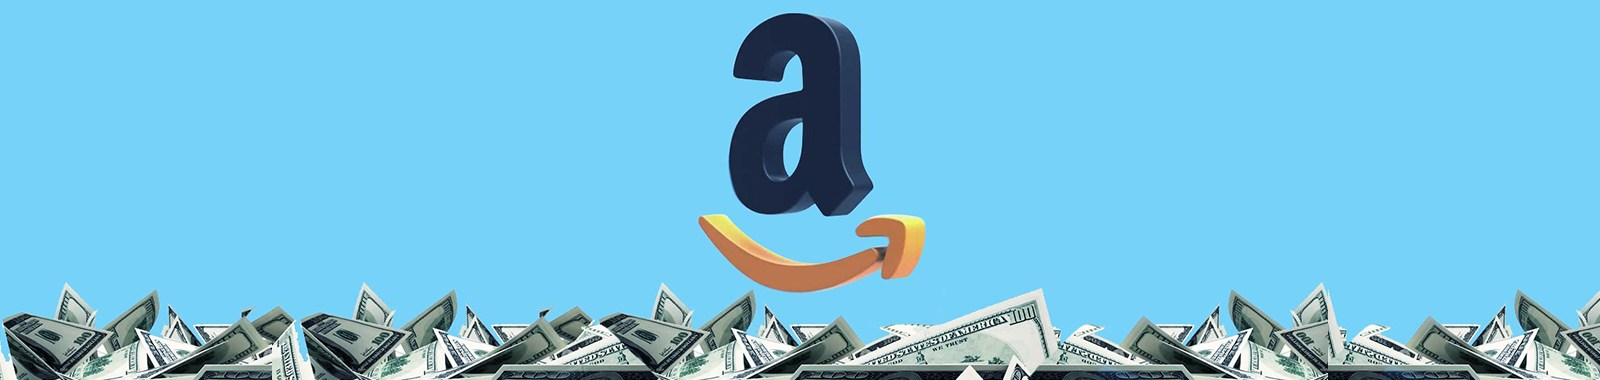 amazon_money-eye